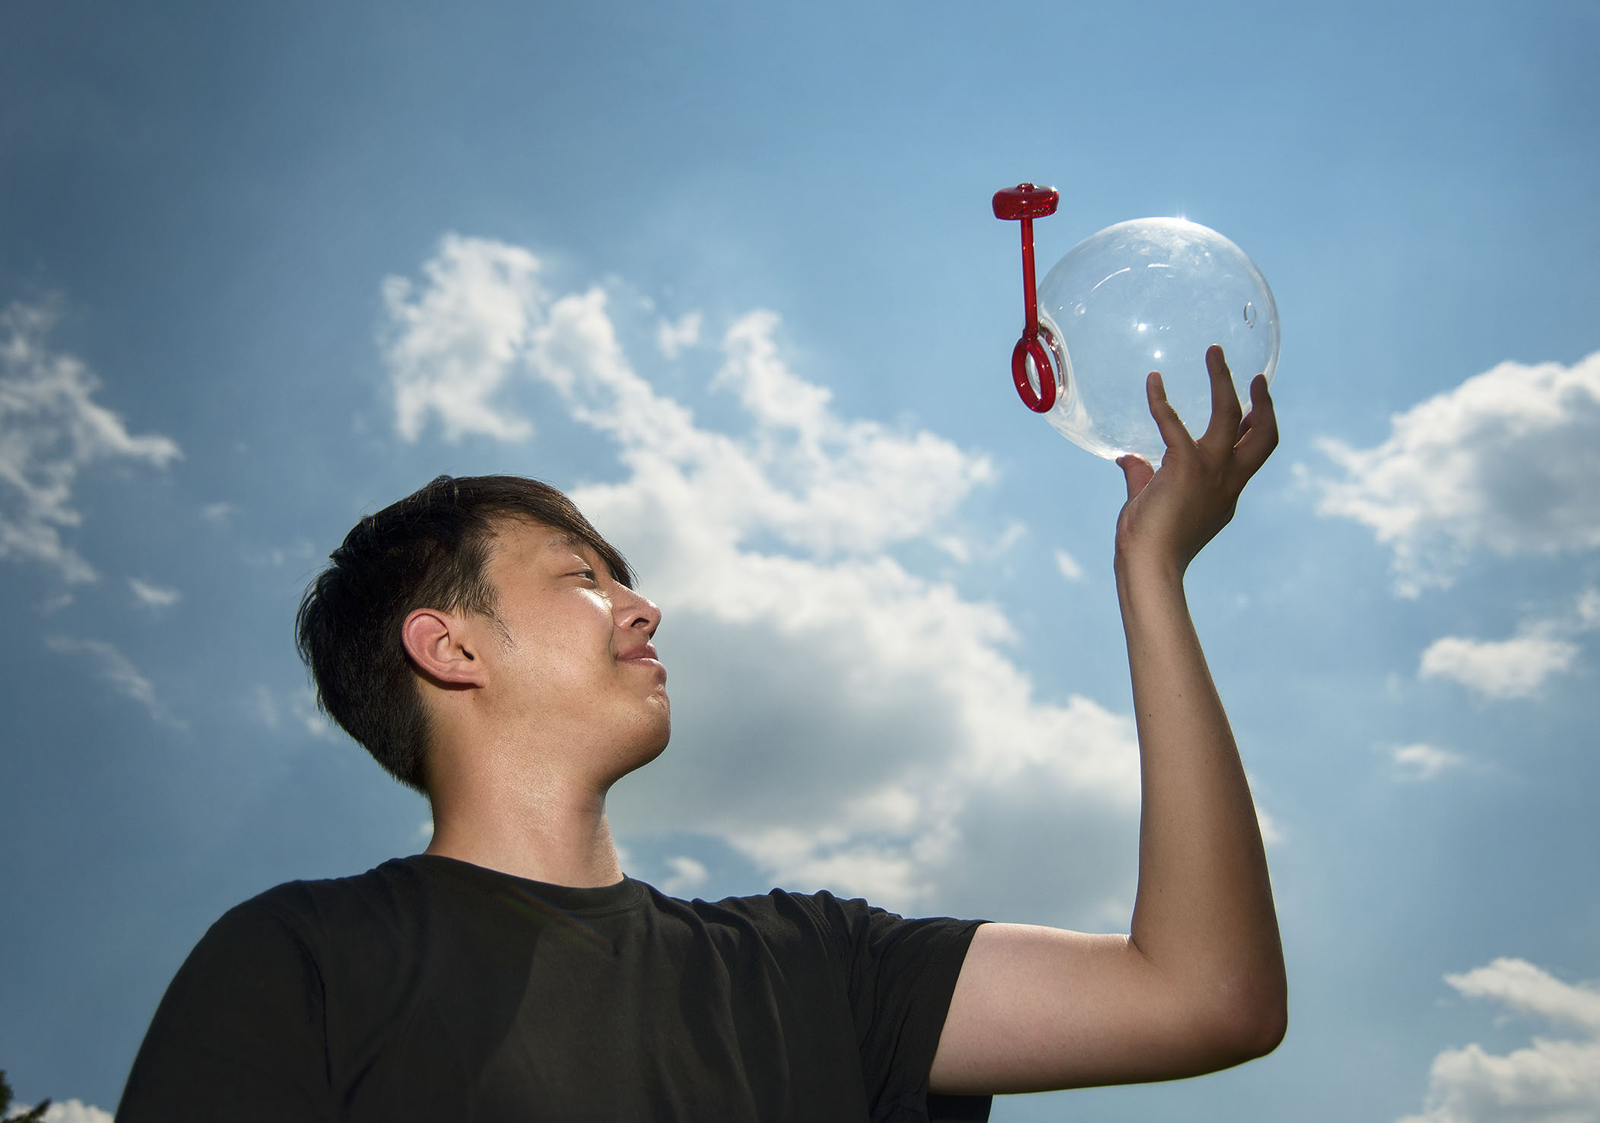 Designer Eric Ku with a soap bubble prototype created during GlassLab on Governors Island